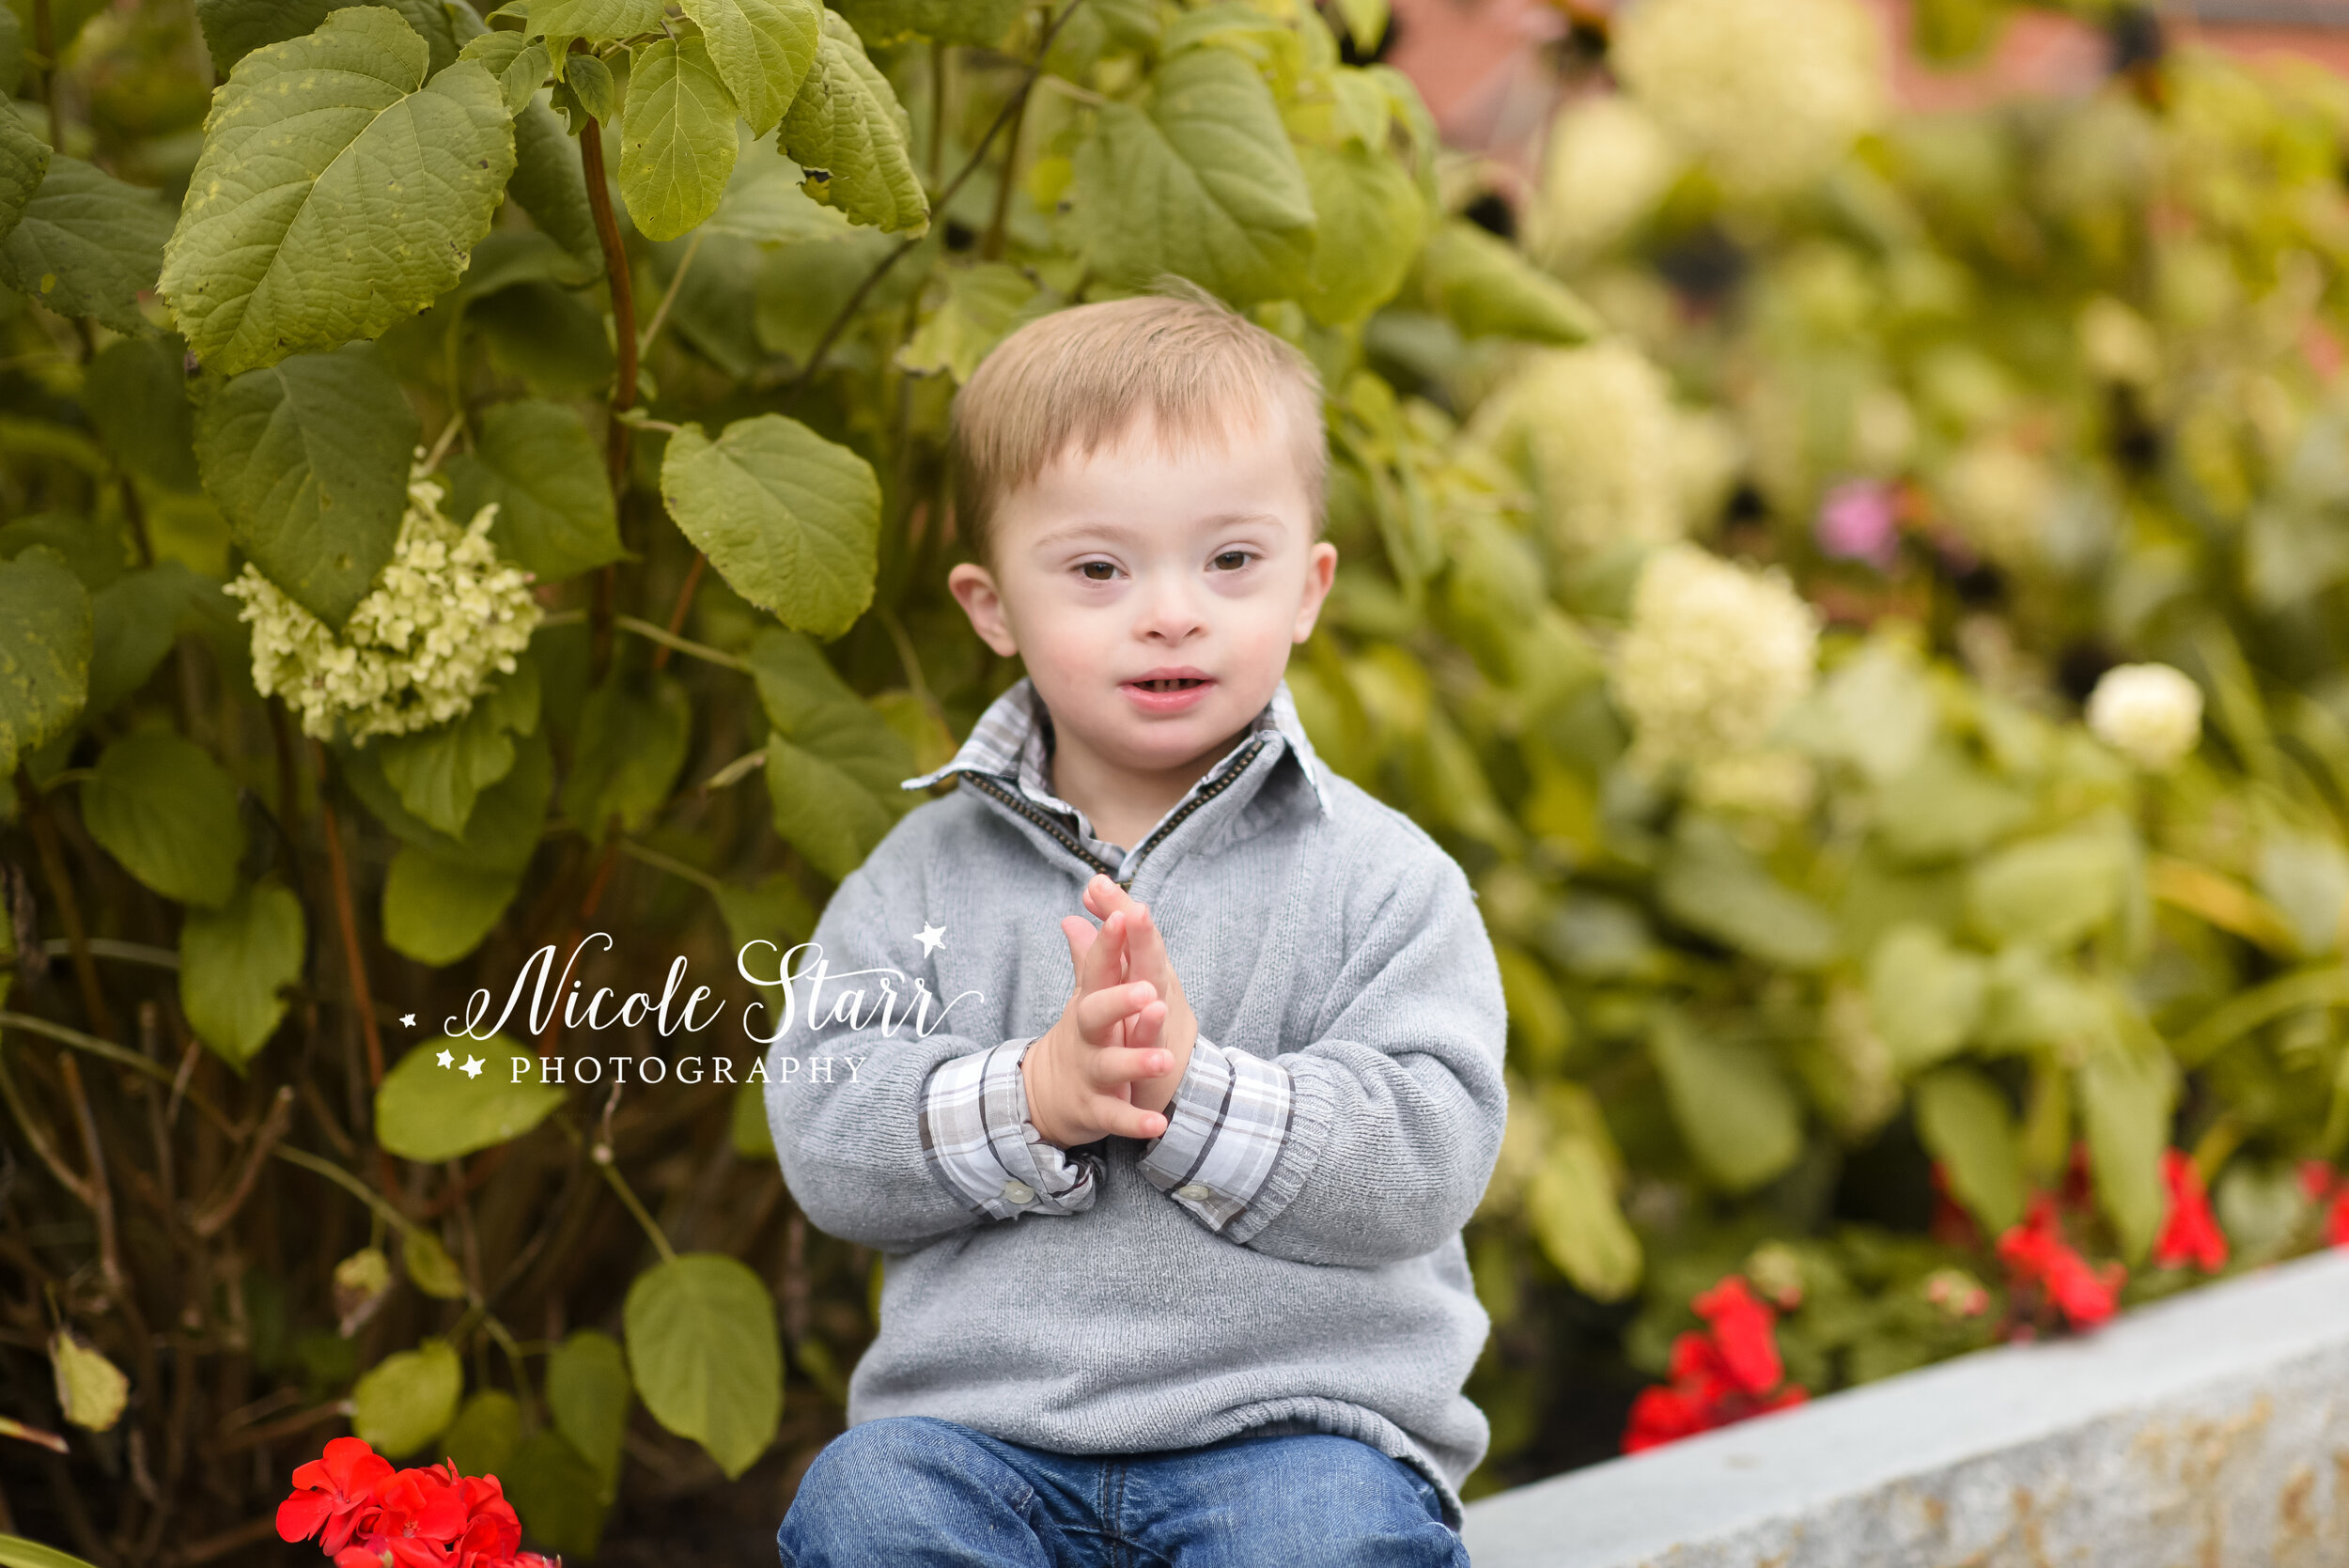 Nicole Starr Photography | Saratoga Springs NY and Boston MA children's photographer, National Down Syndrome Awareness Month, NDSAM, Down syndrome advocacy, special needs photographer, Down syndrome awareness, family with special needs, children with Down syndrome